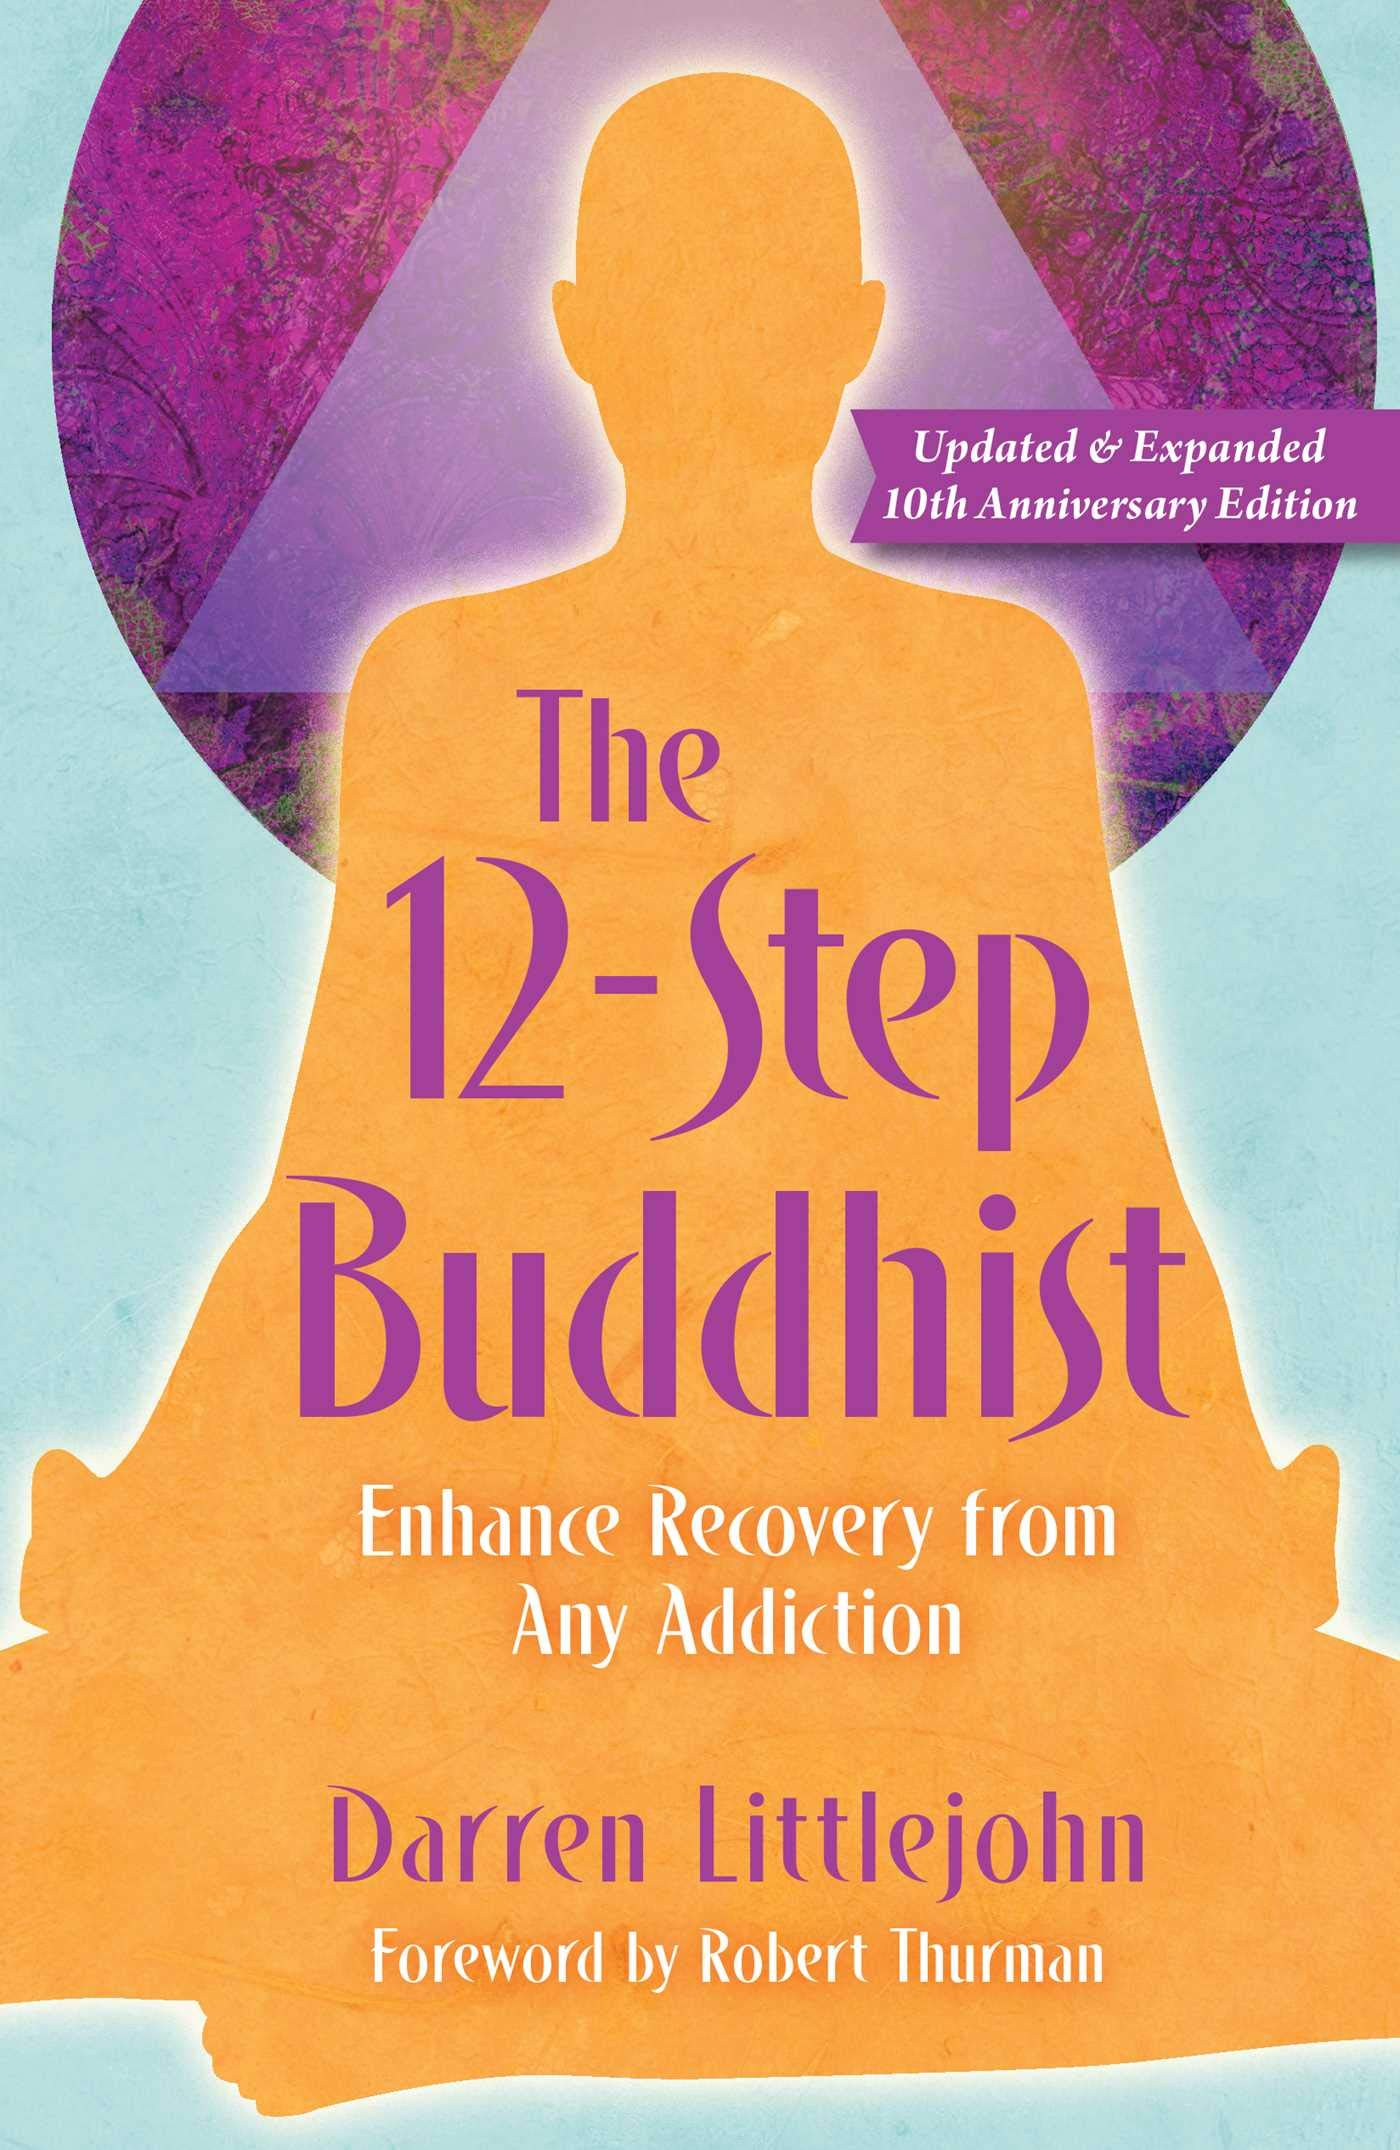 The 12 Step Buddhist 10th Anniversary Edition  English Edition